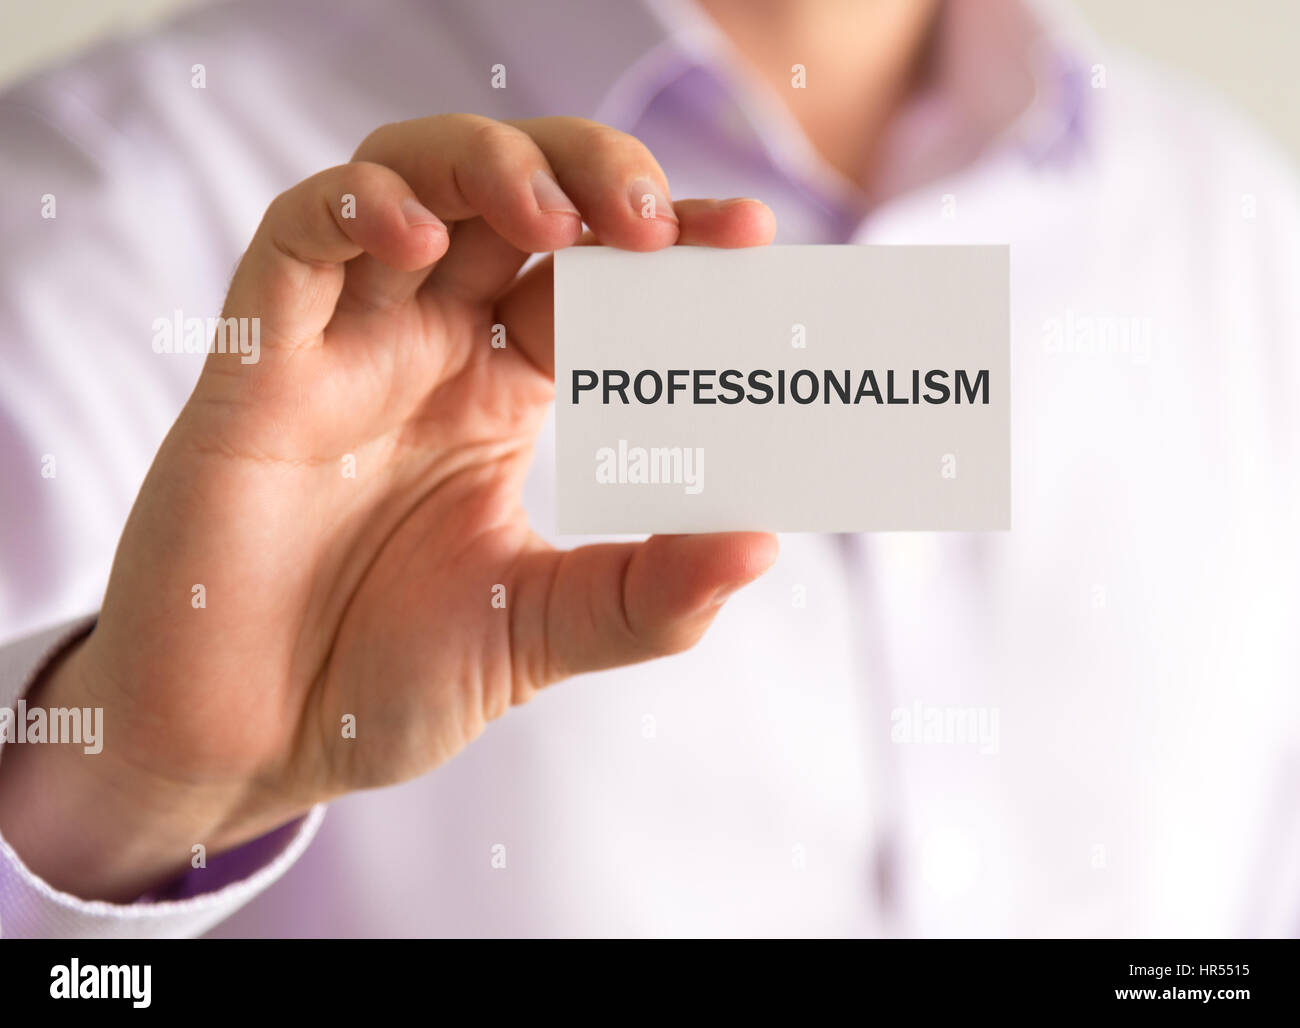 Closeup on businessman holding a card with PROFESSIONALISM message, business concept image with soft focus background - Stock Image